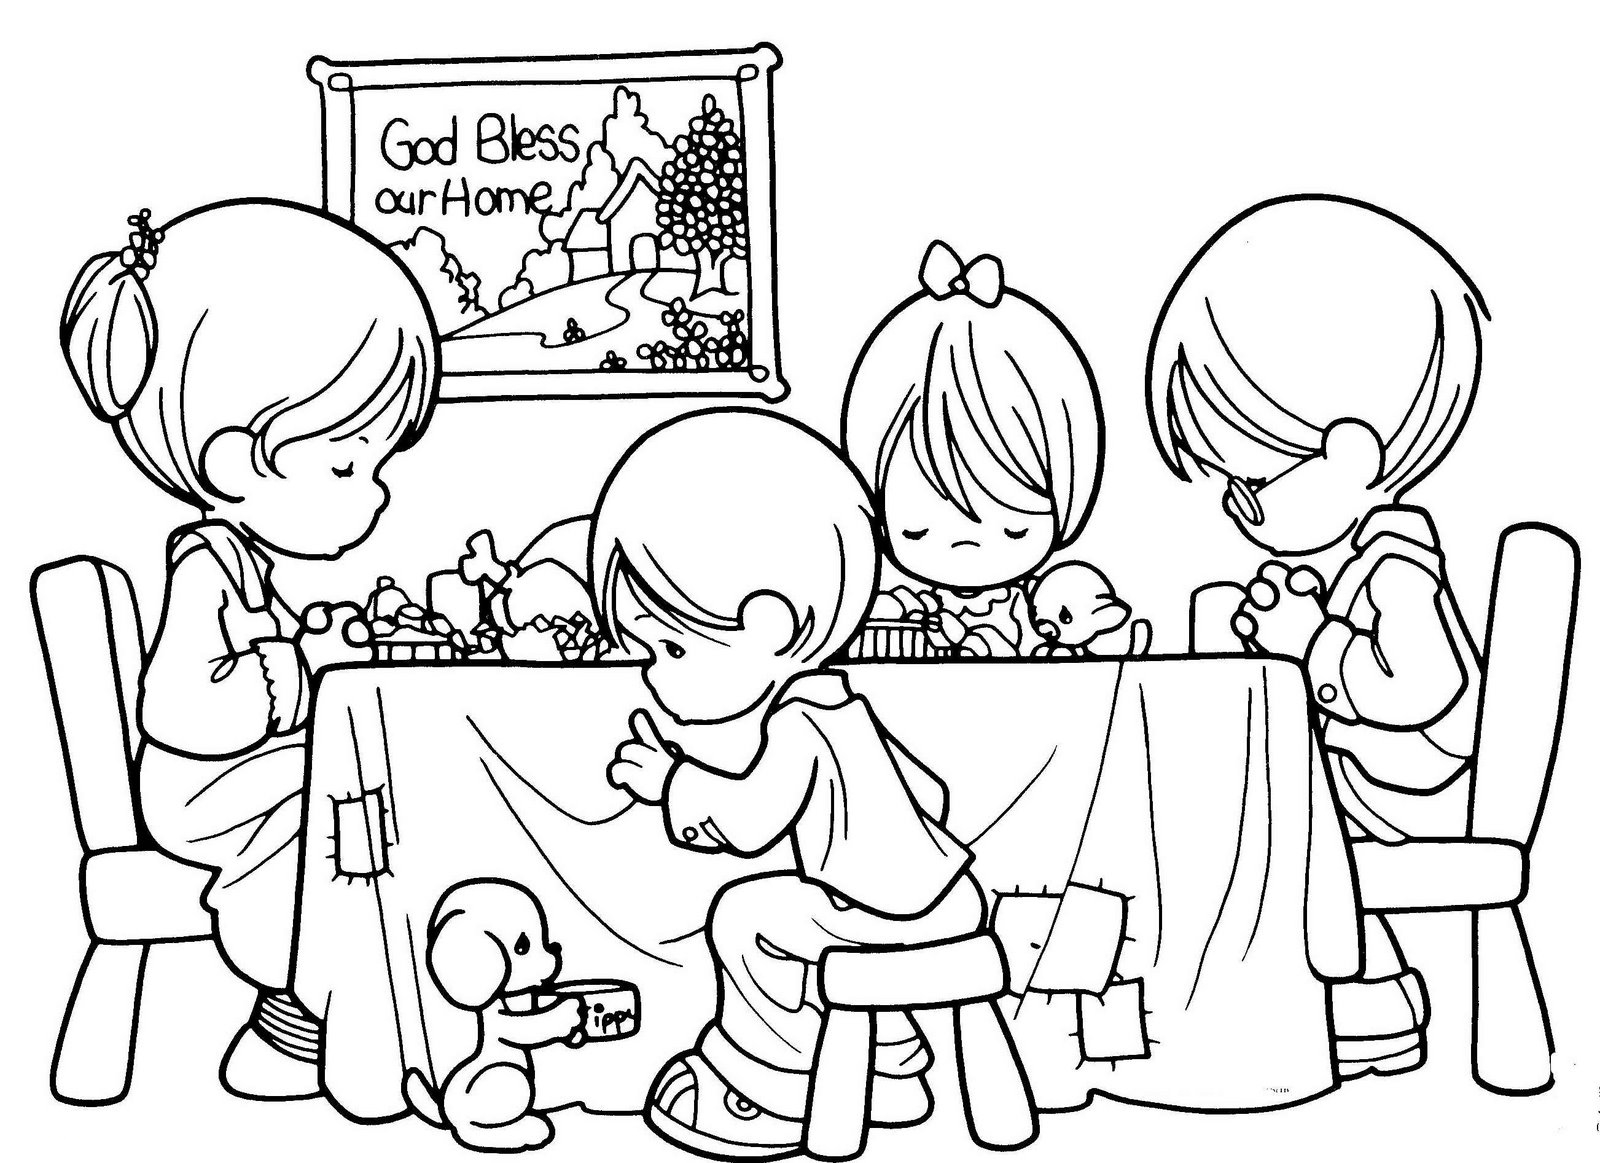 free christiian coloring pages - photo#12